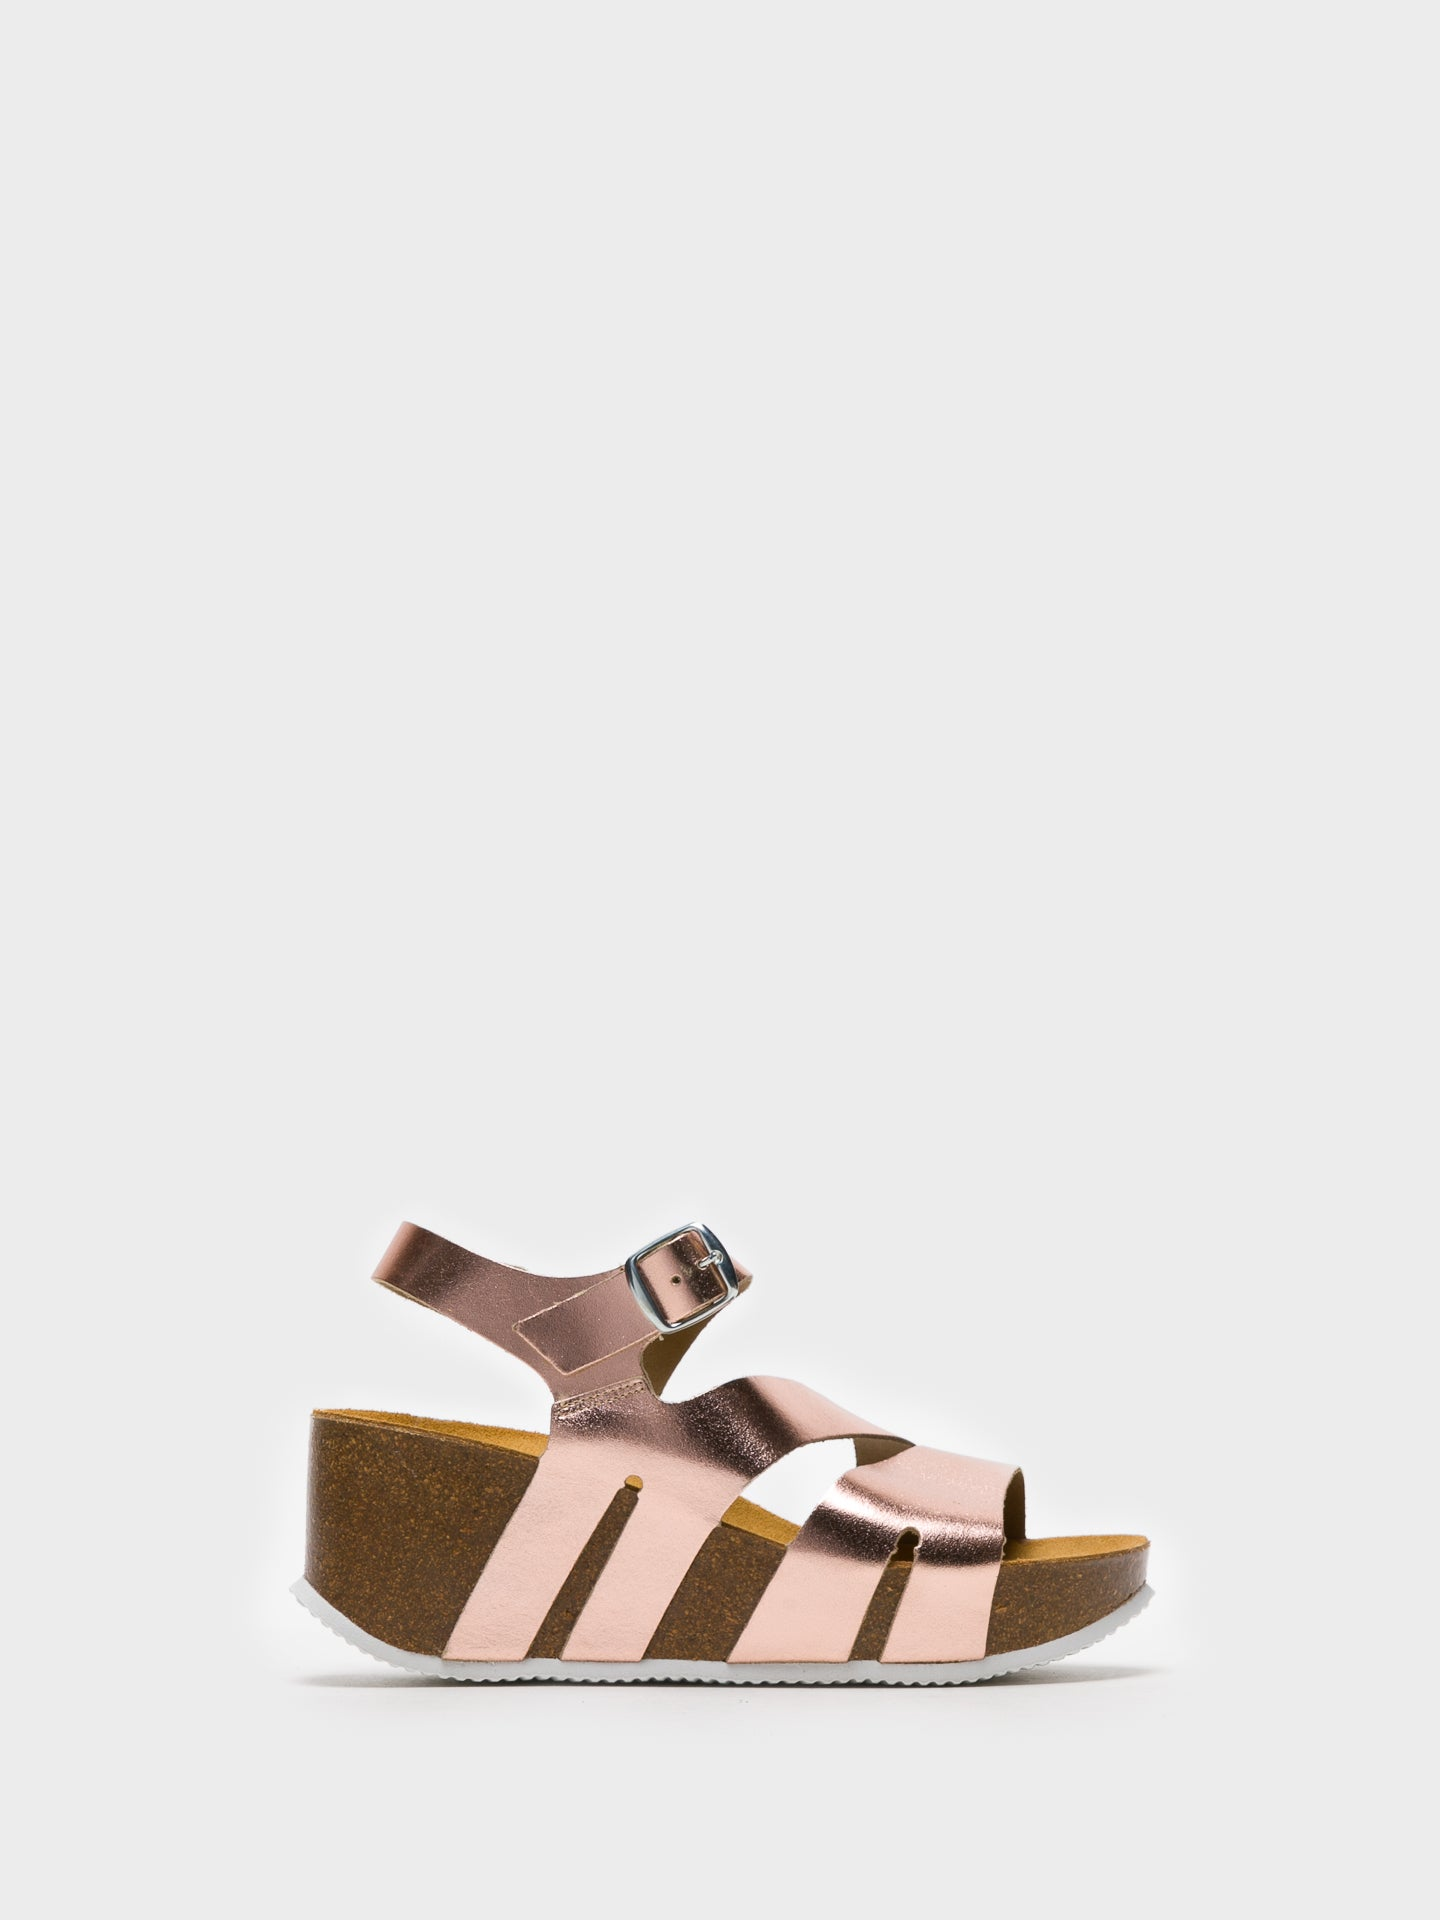 Sotoalto Pink Wedge Sandals